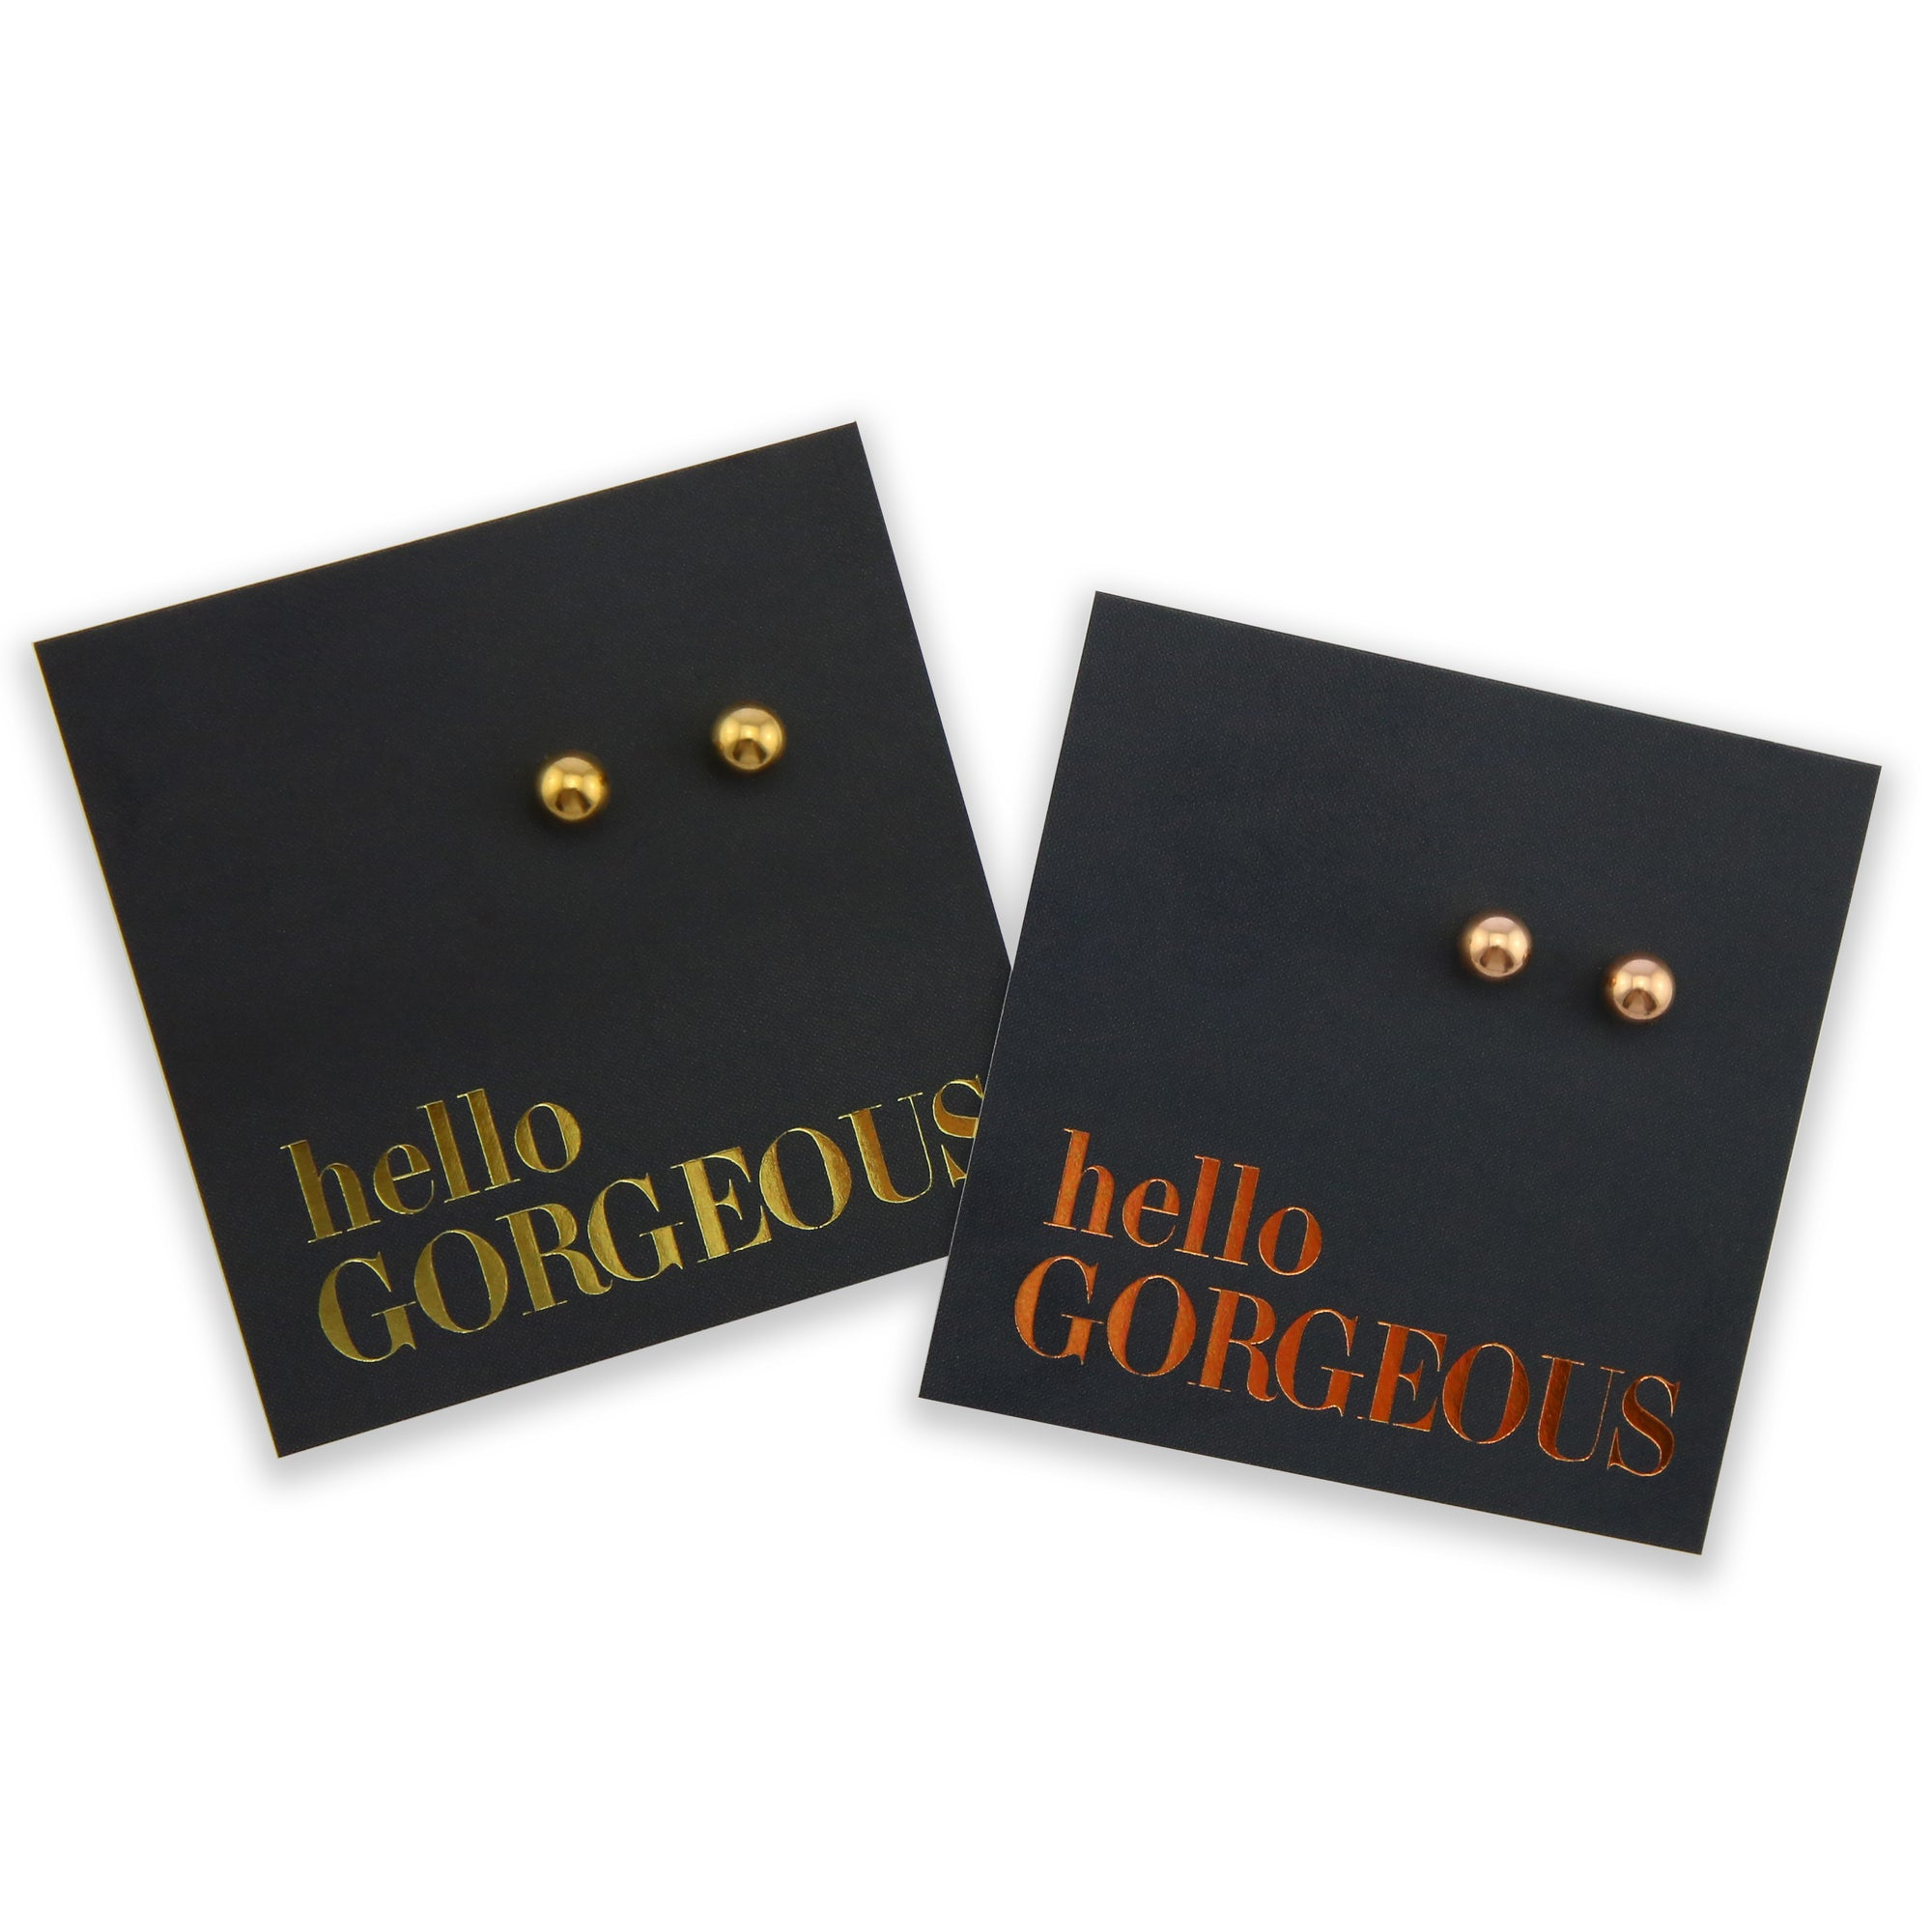 Stainless Steel Ball shape earrings. Hypoallergenic studs in Rose Gold, Silver, Black & Gold. Star shaped. Beautiful Gifts by Sister and Soul. Foil feature gift card Girl you are amazing.